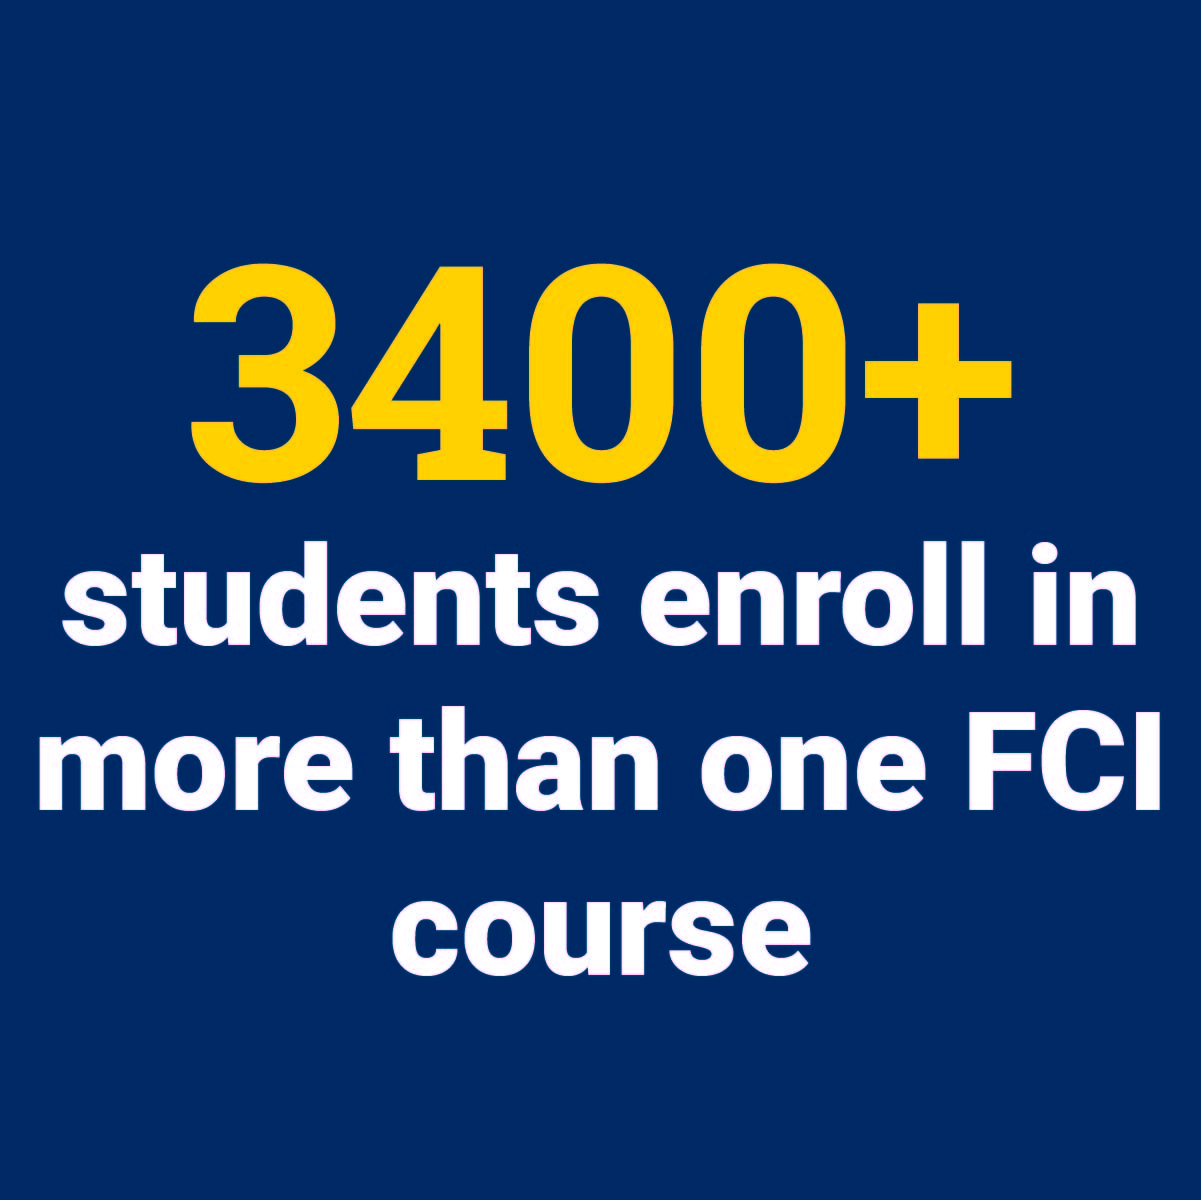 3400+ students enroll in more than one FCI course